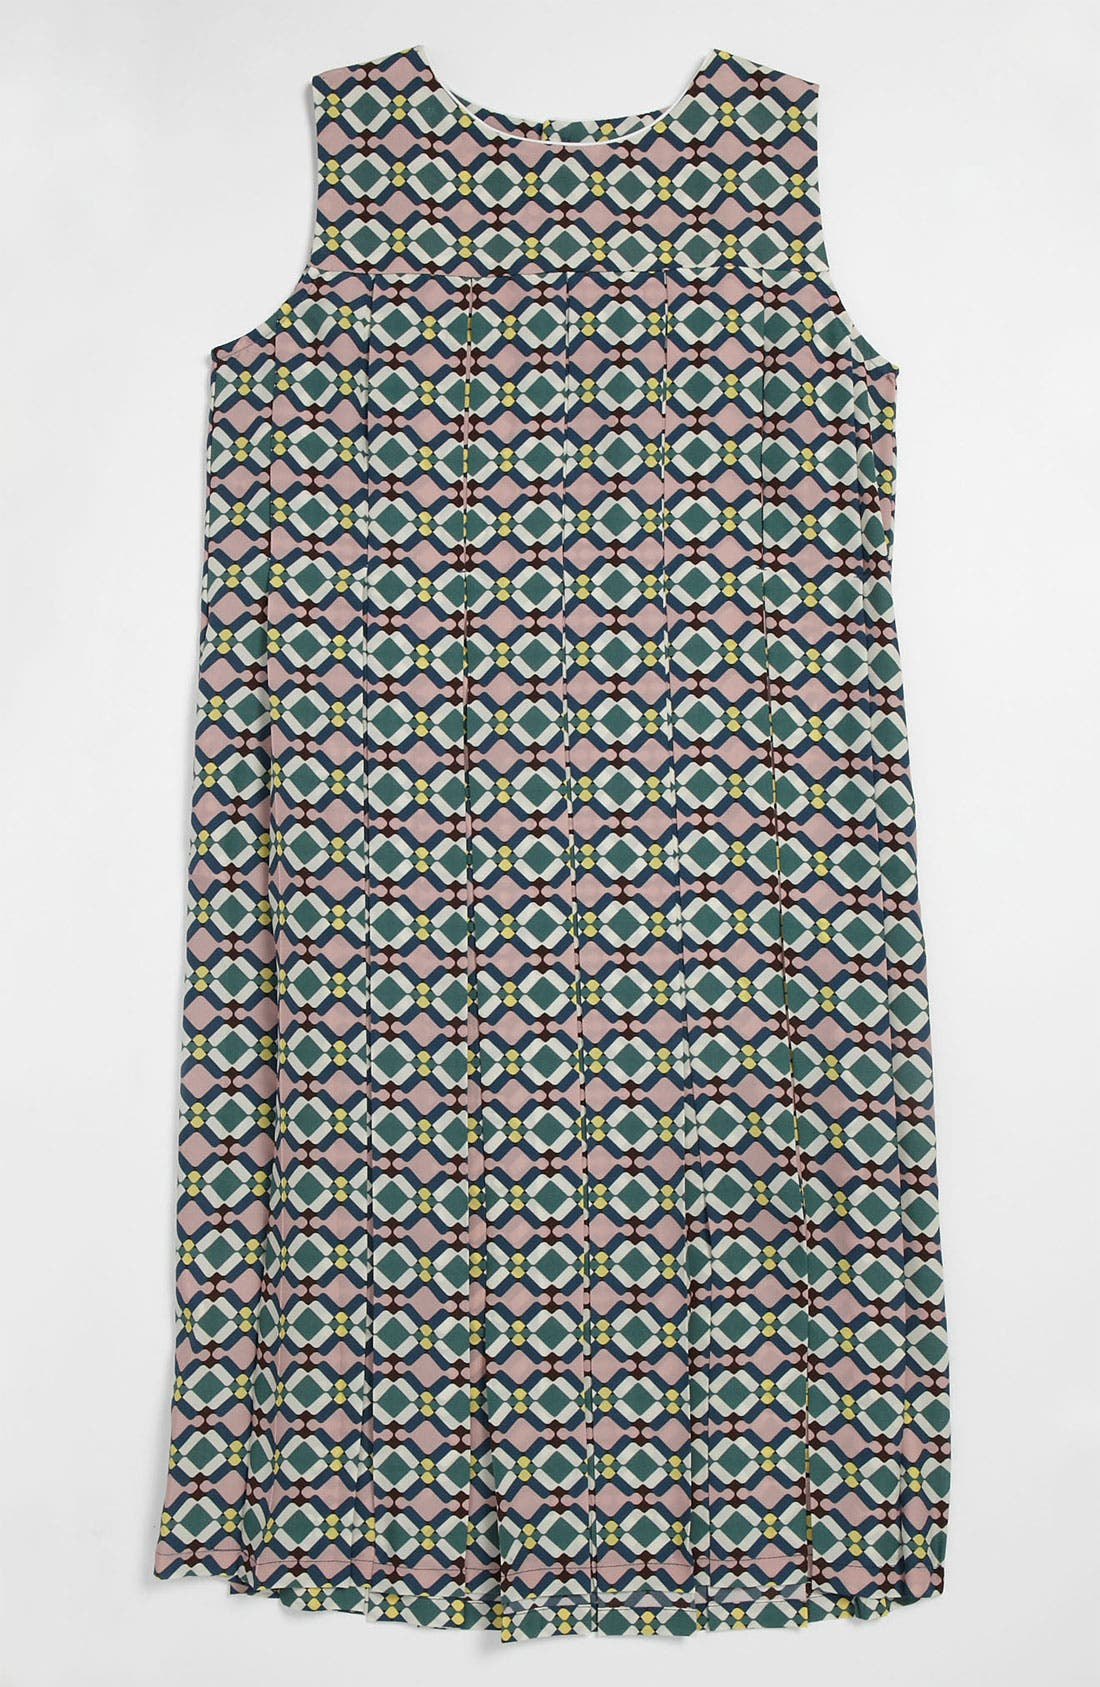 Alternate Image 1 Selected - Marni Print Pleat Dress (Little Girls & Big Girls)